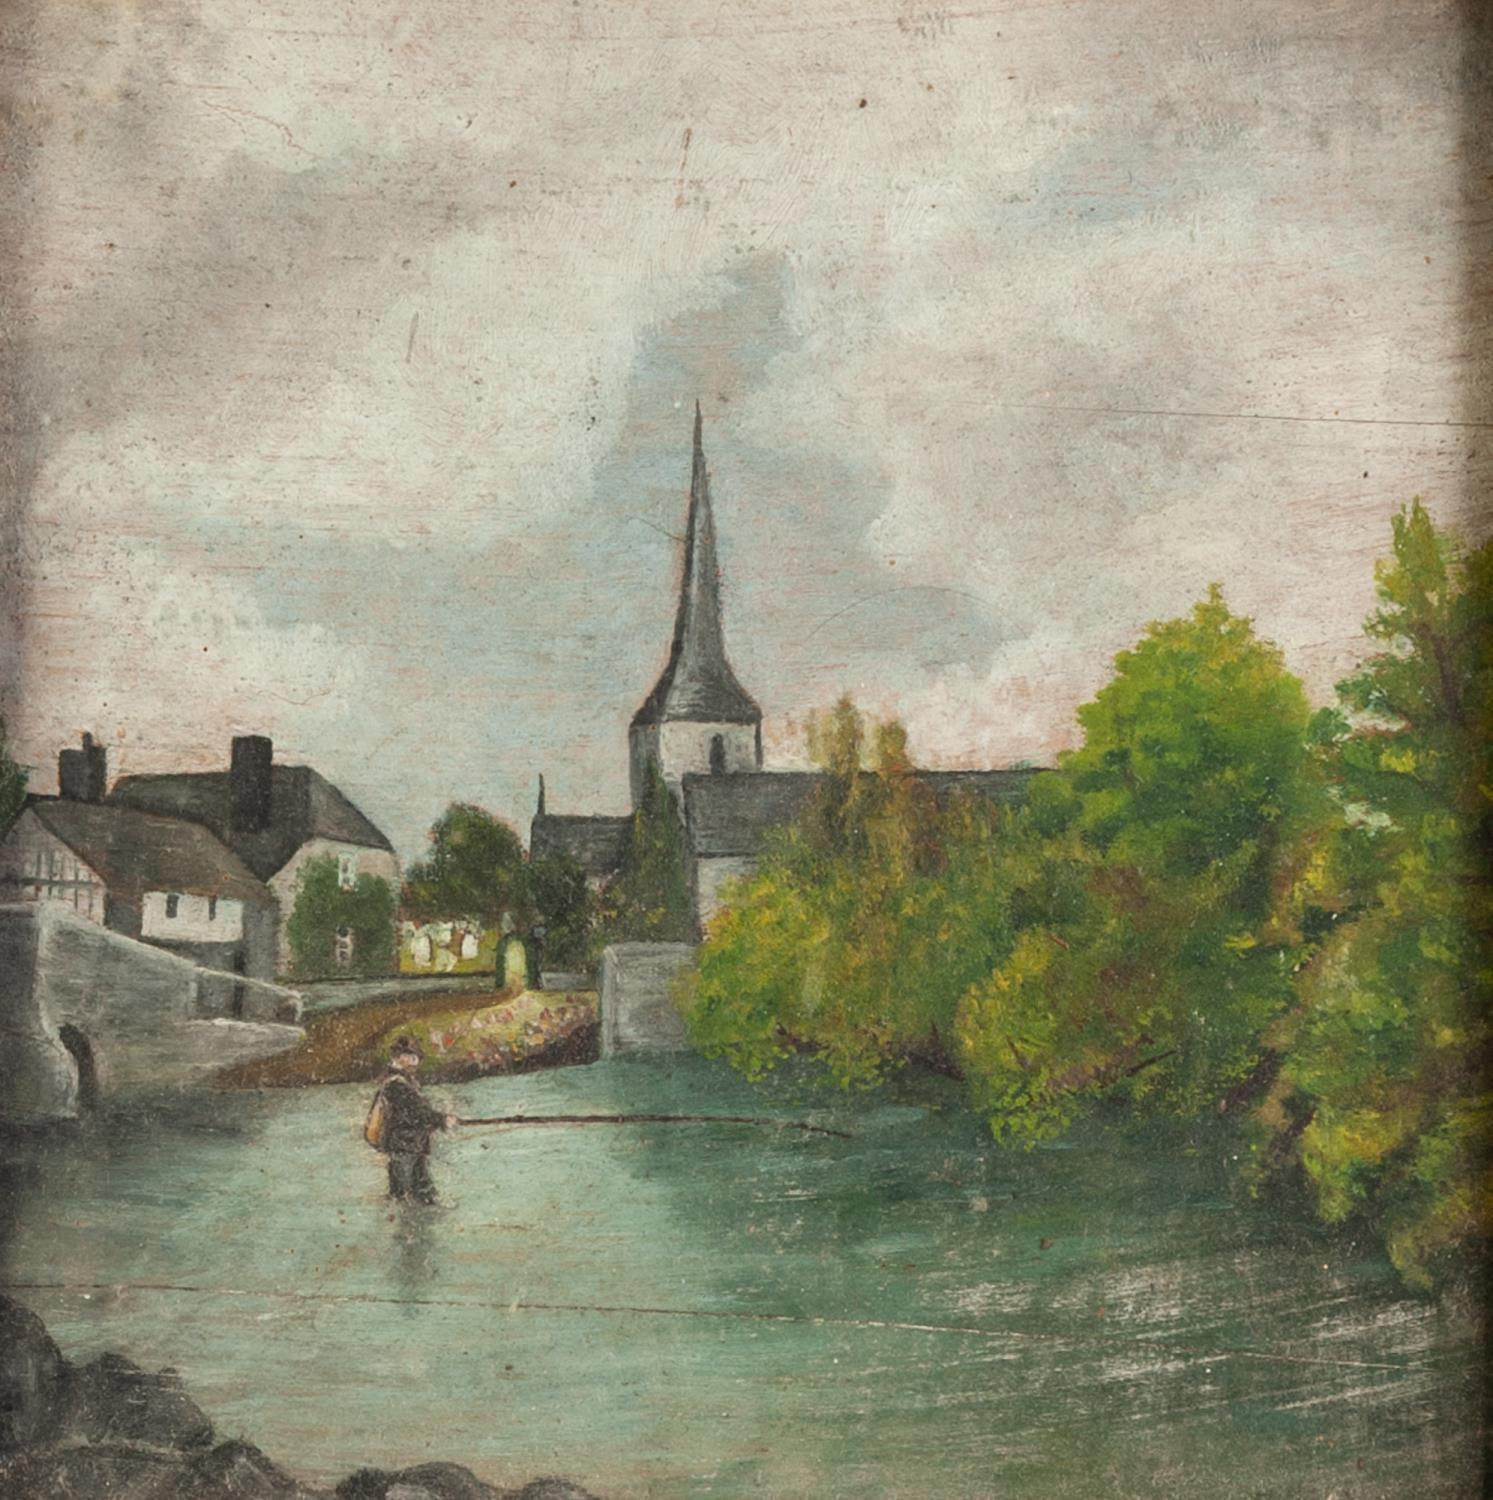 Lot 274 - UNATTRIBUTED (NINETEENTH CENTURY) OIL PAINTING ON PANEL River scene with wading angler, a town in